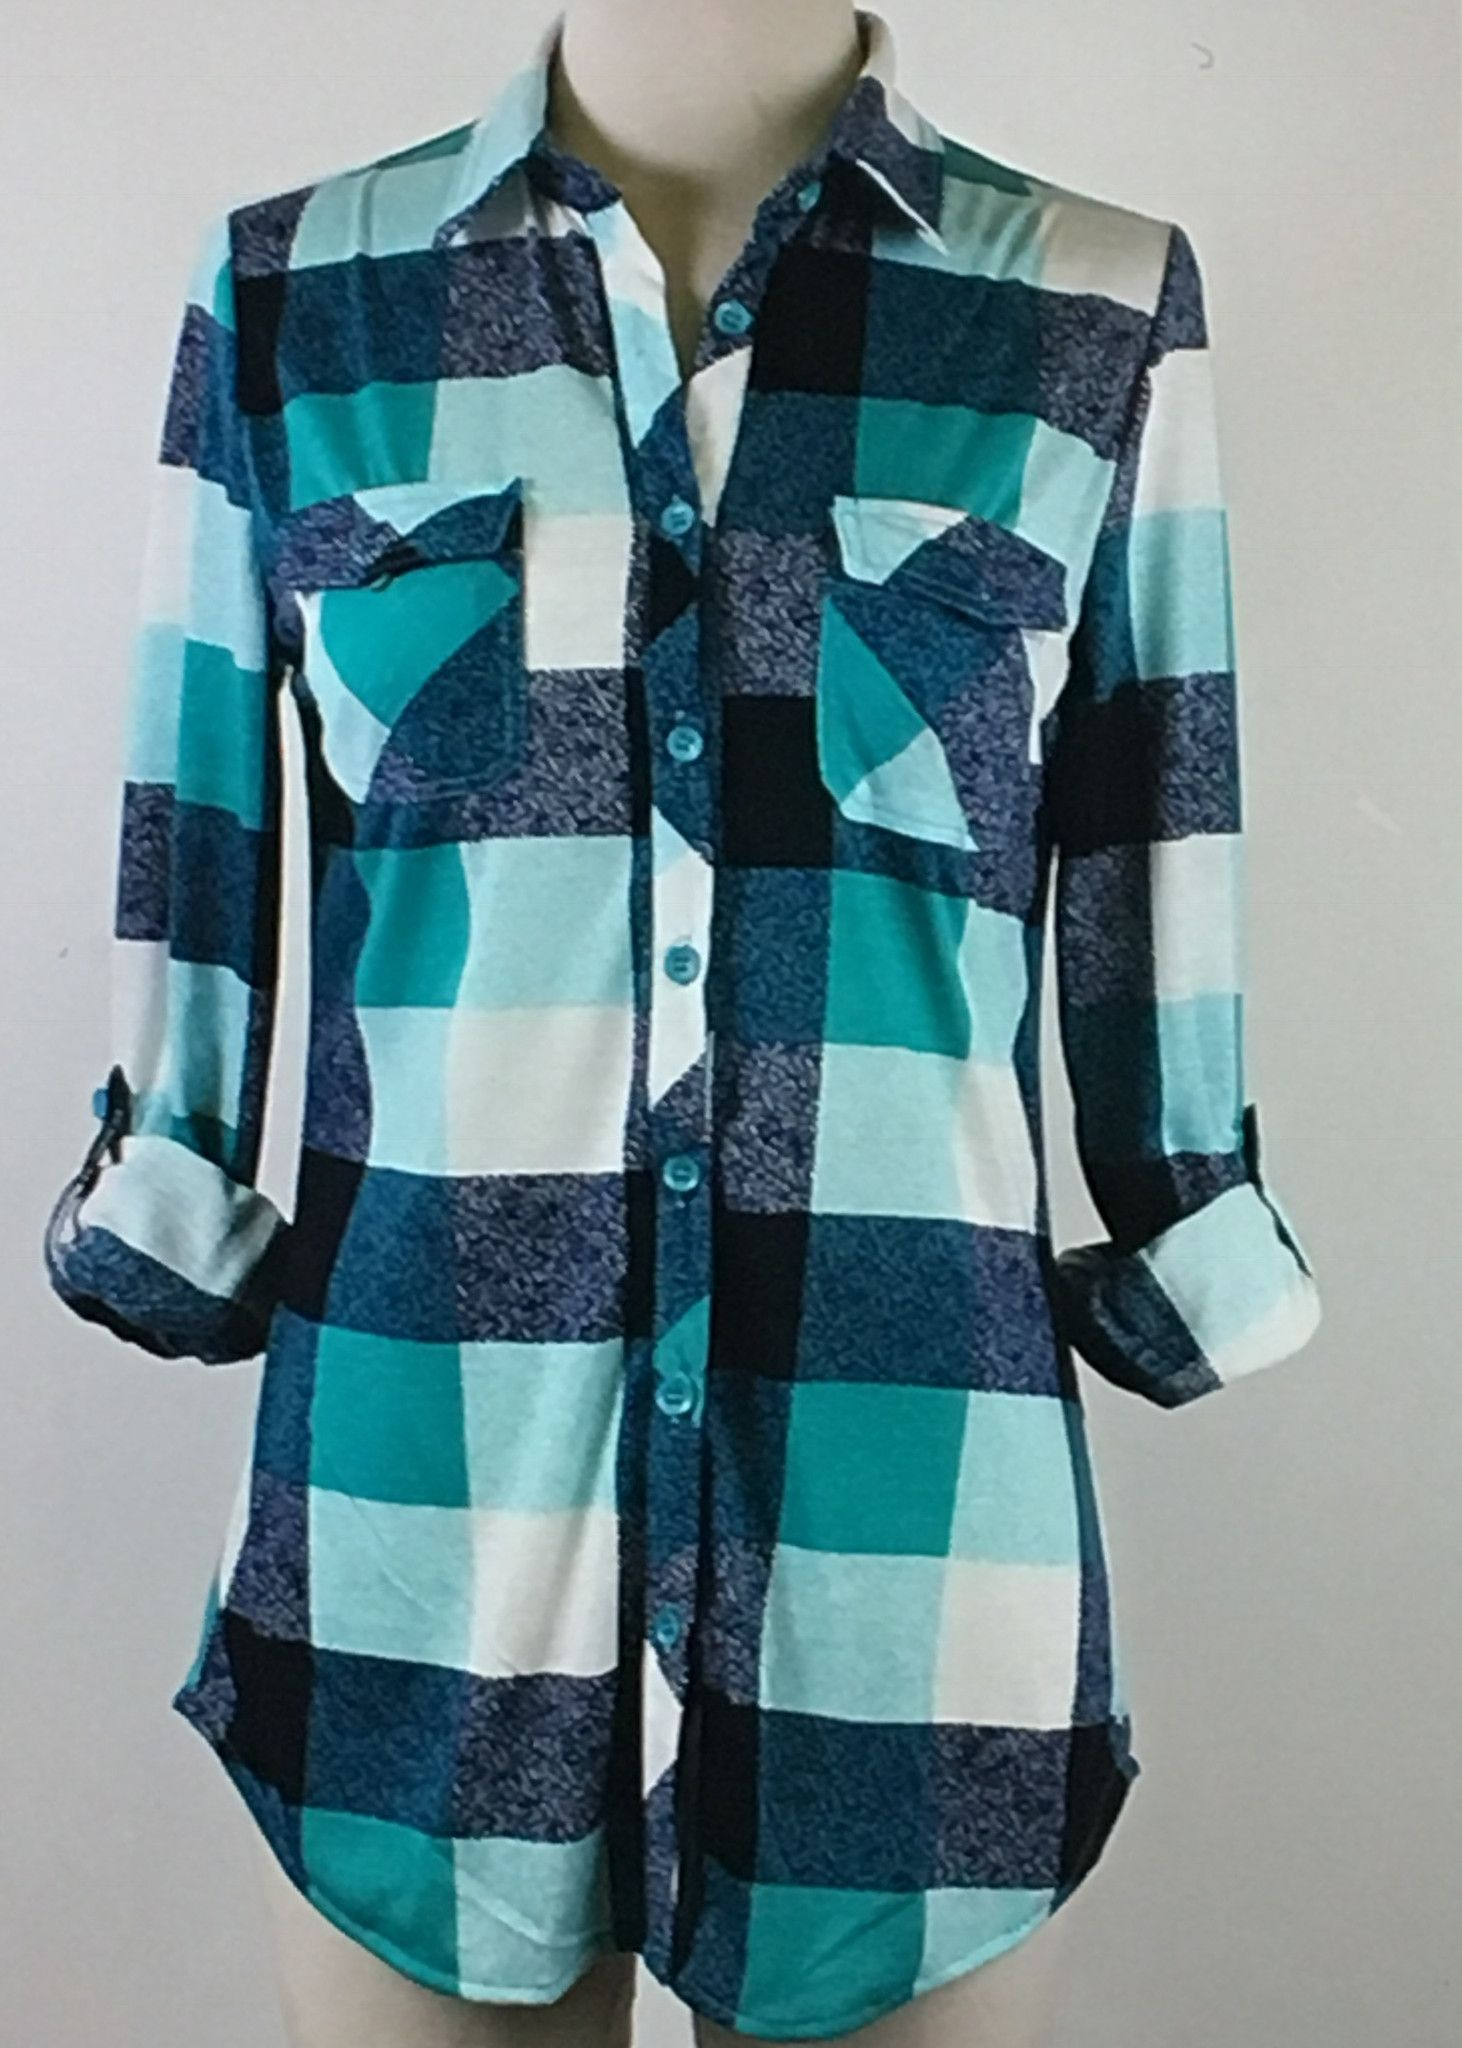 Women's Plaid Flannel Button Up Shirt Navy and Teal | Products ...